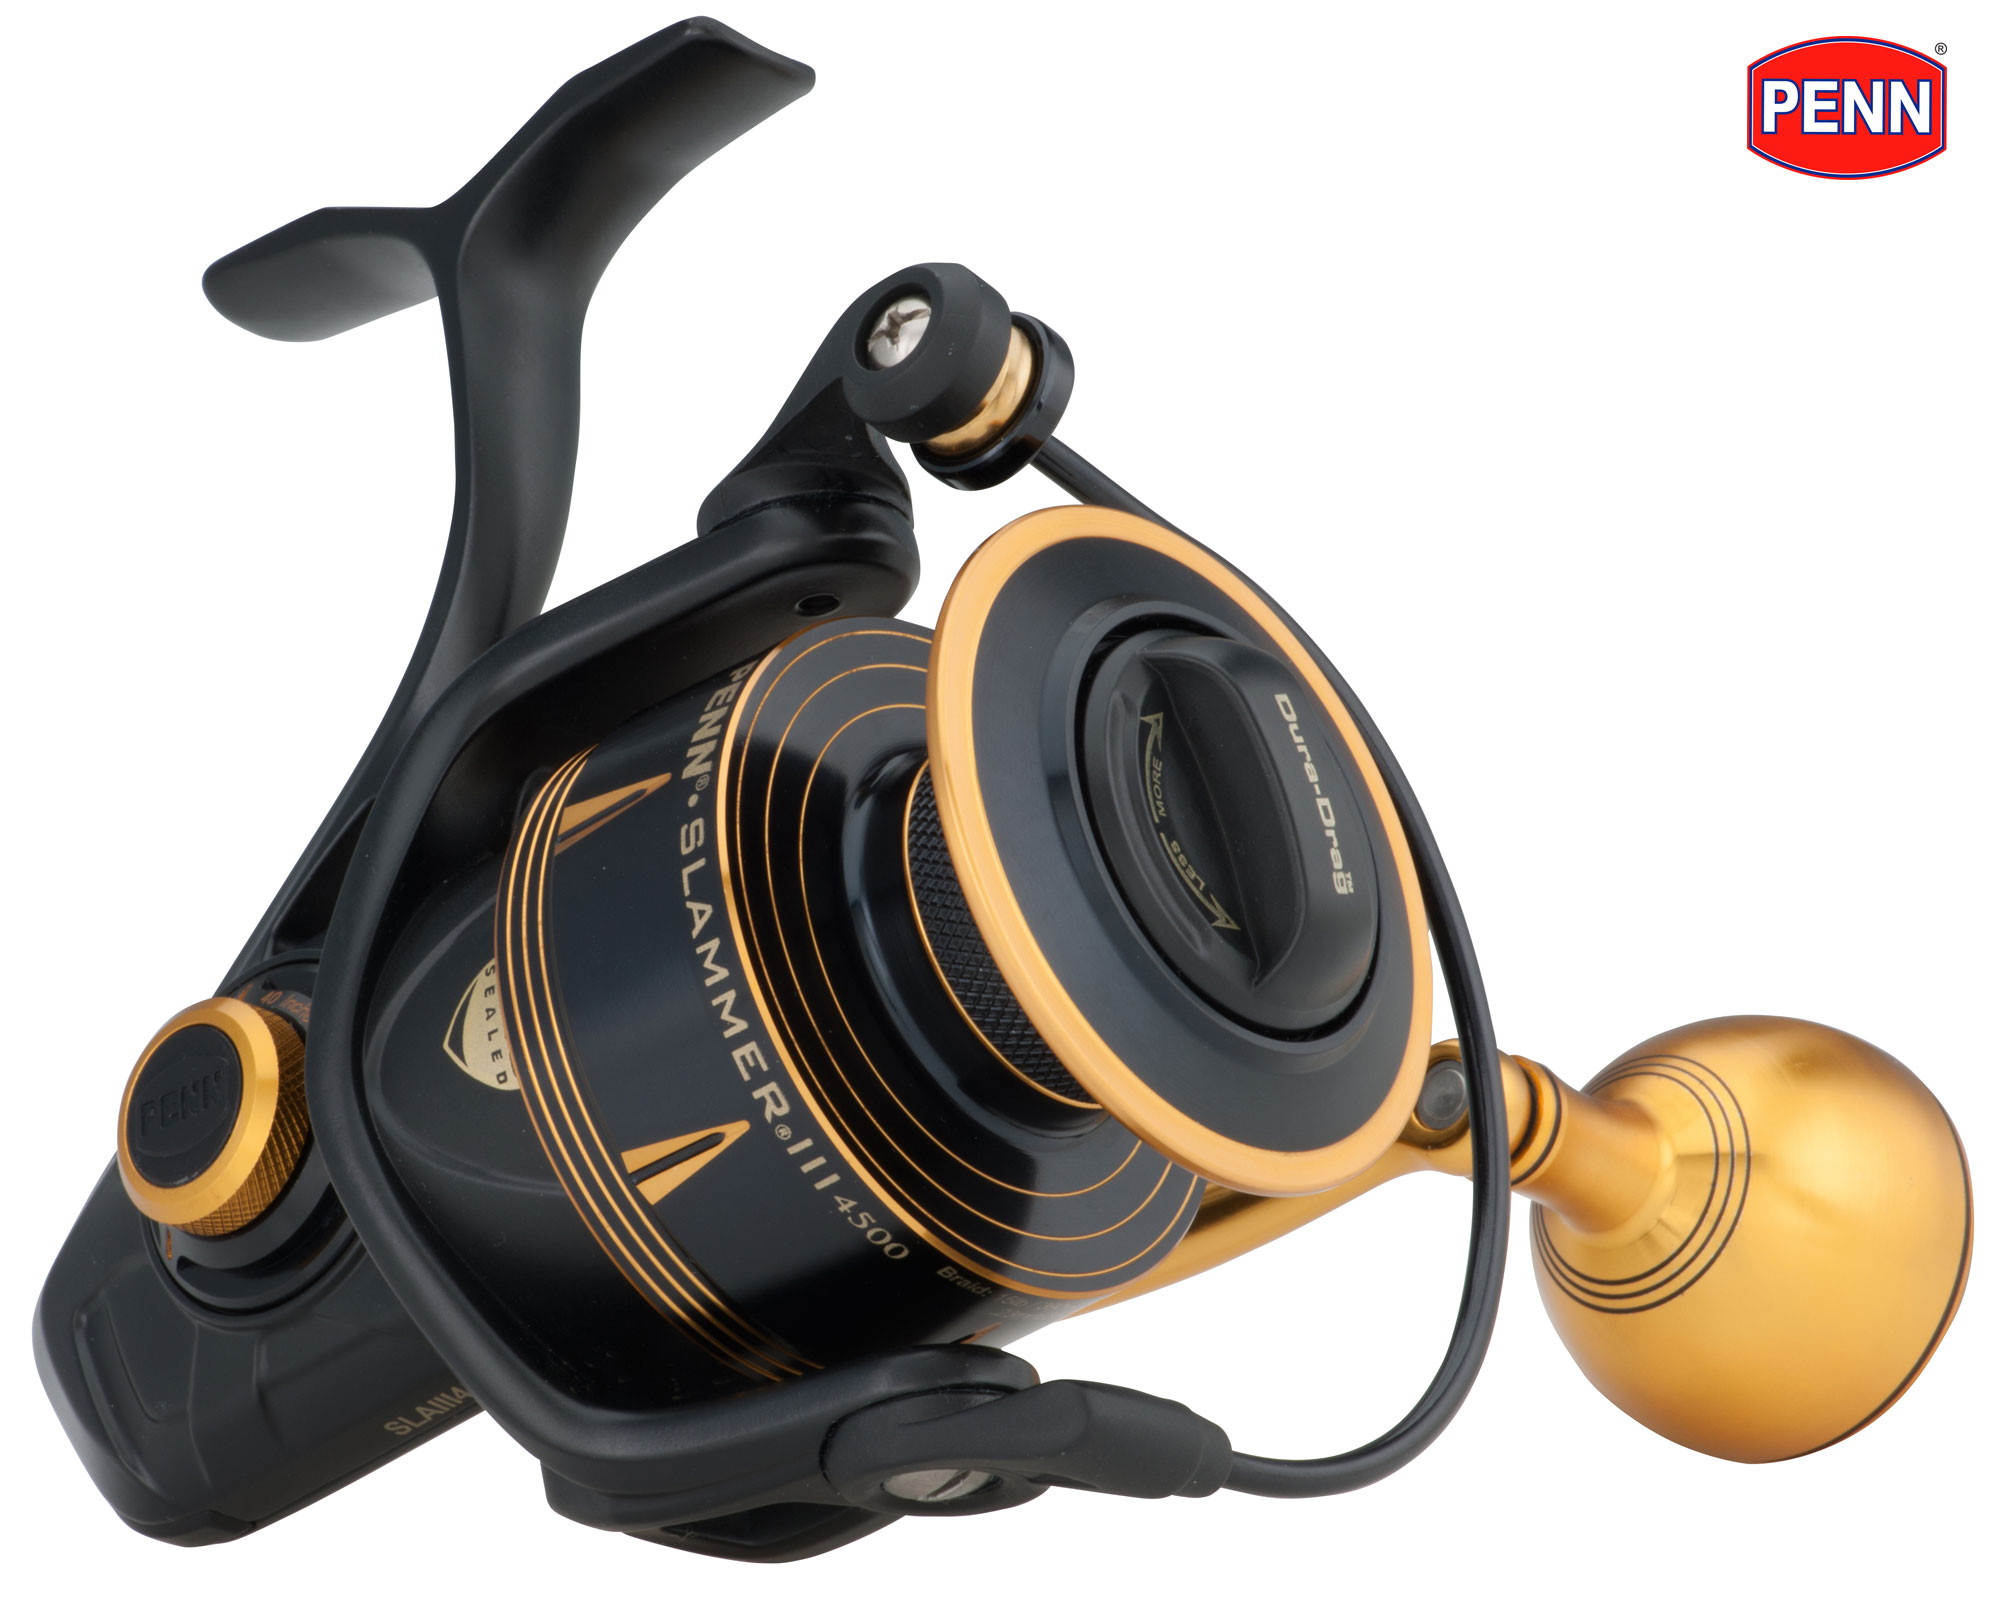 new penn slammer iii mk3 saltwater spinning reels - all models, Fishing Reels